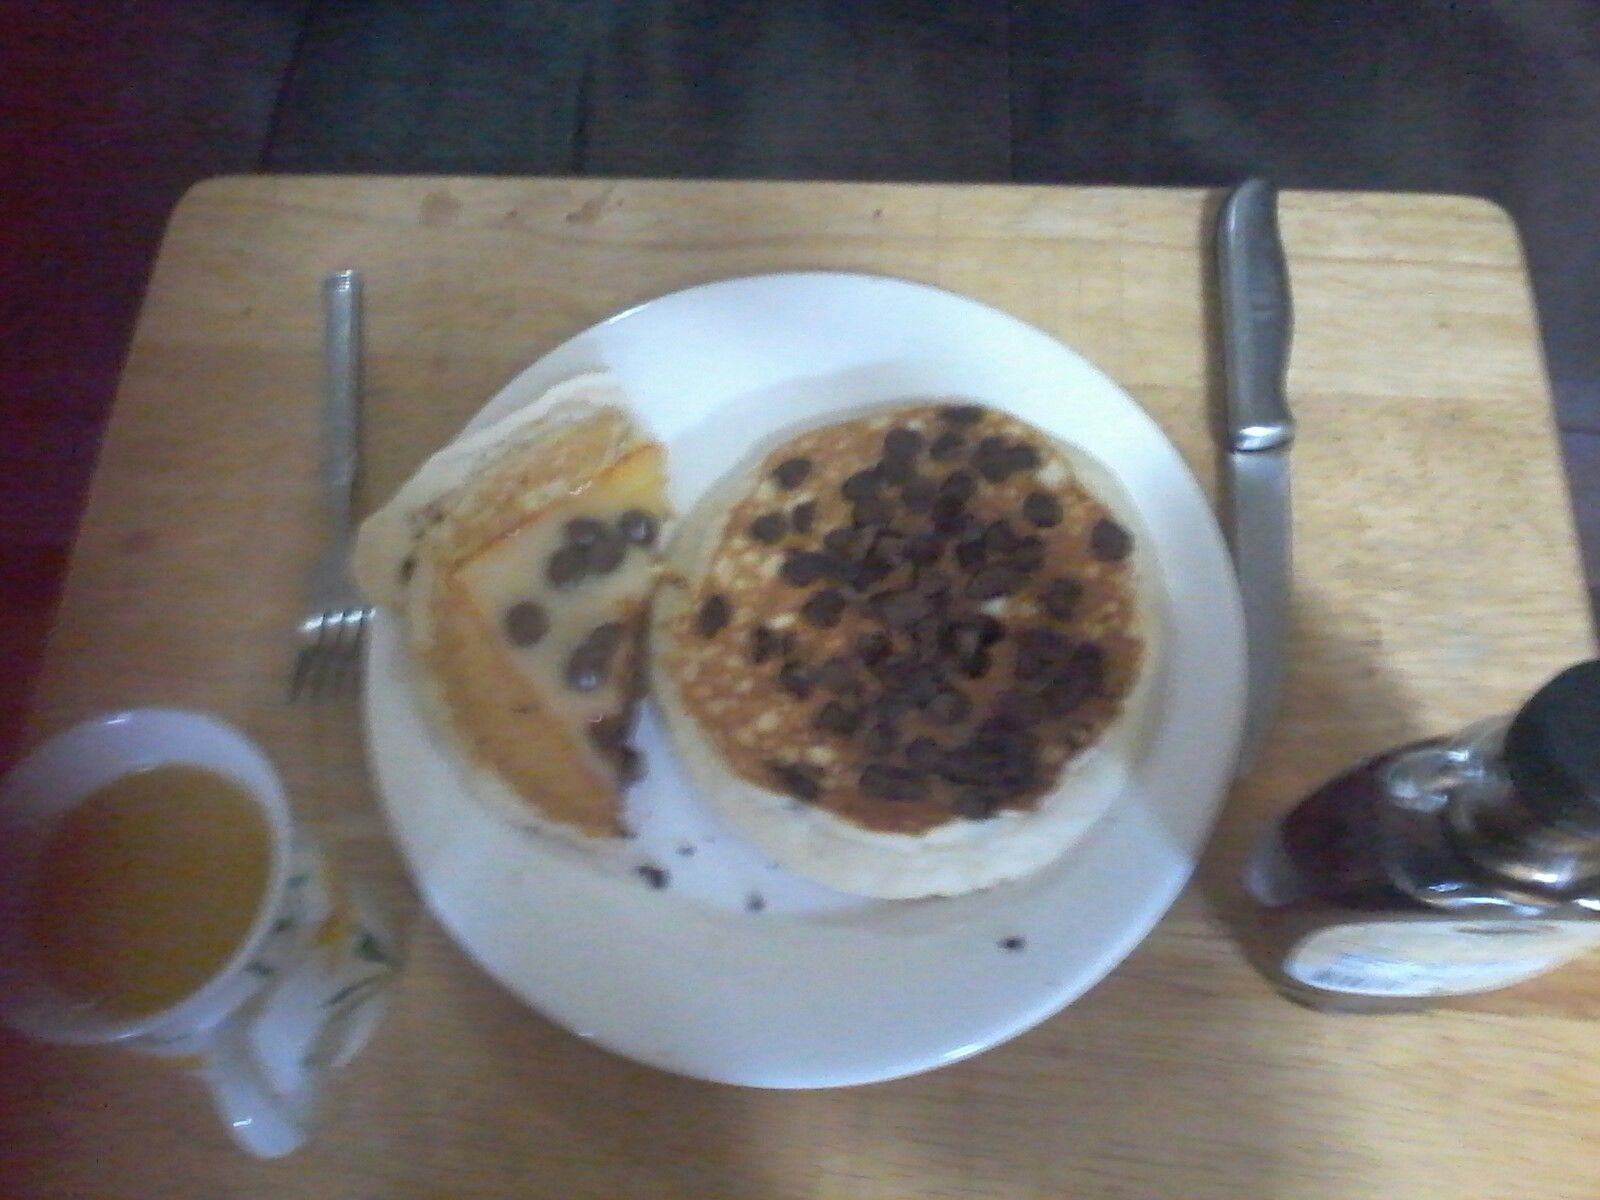 Cheese pancakes with chocolate chips